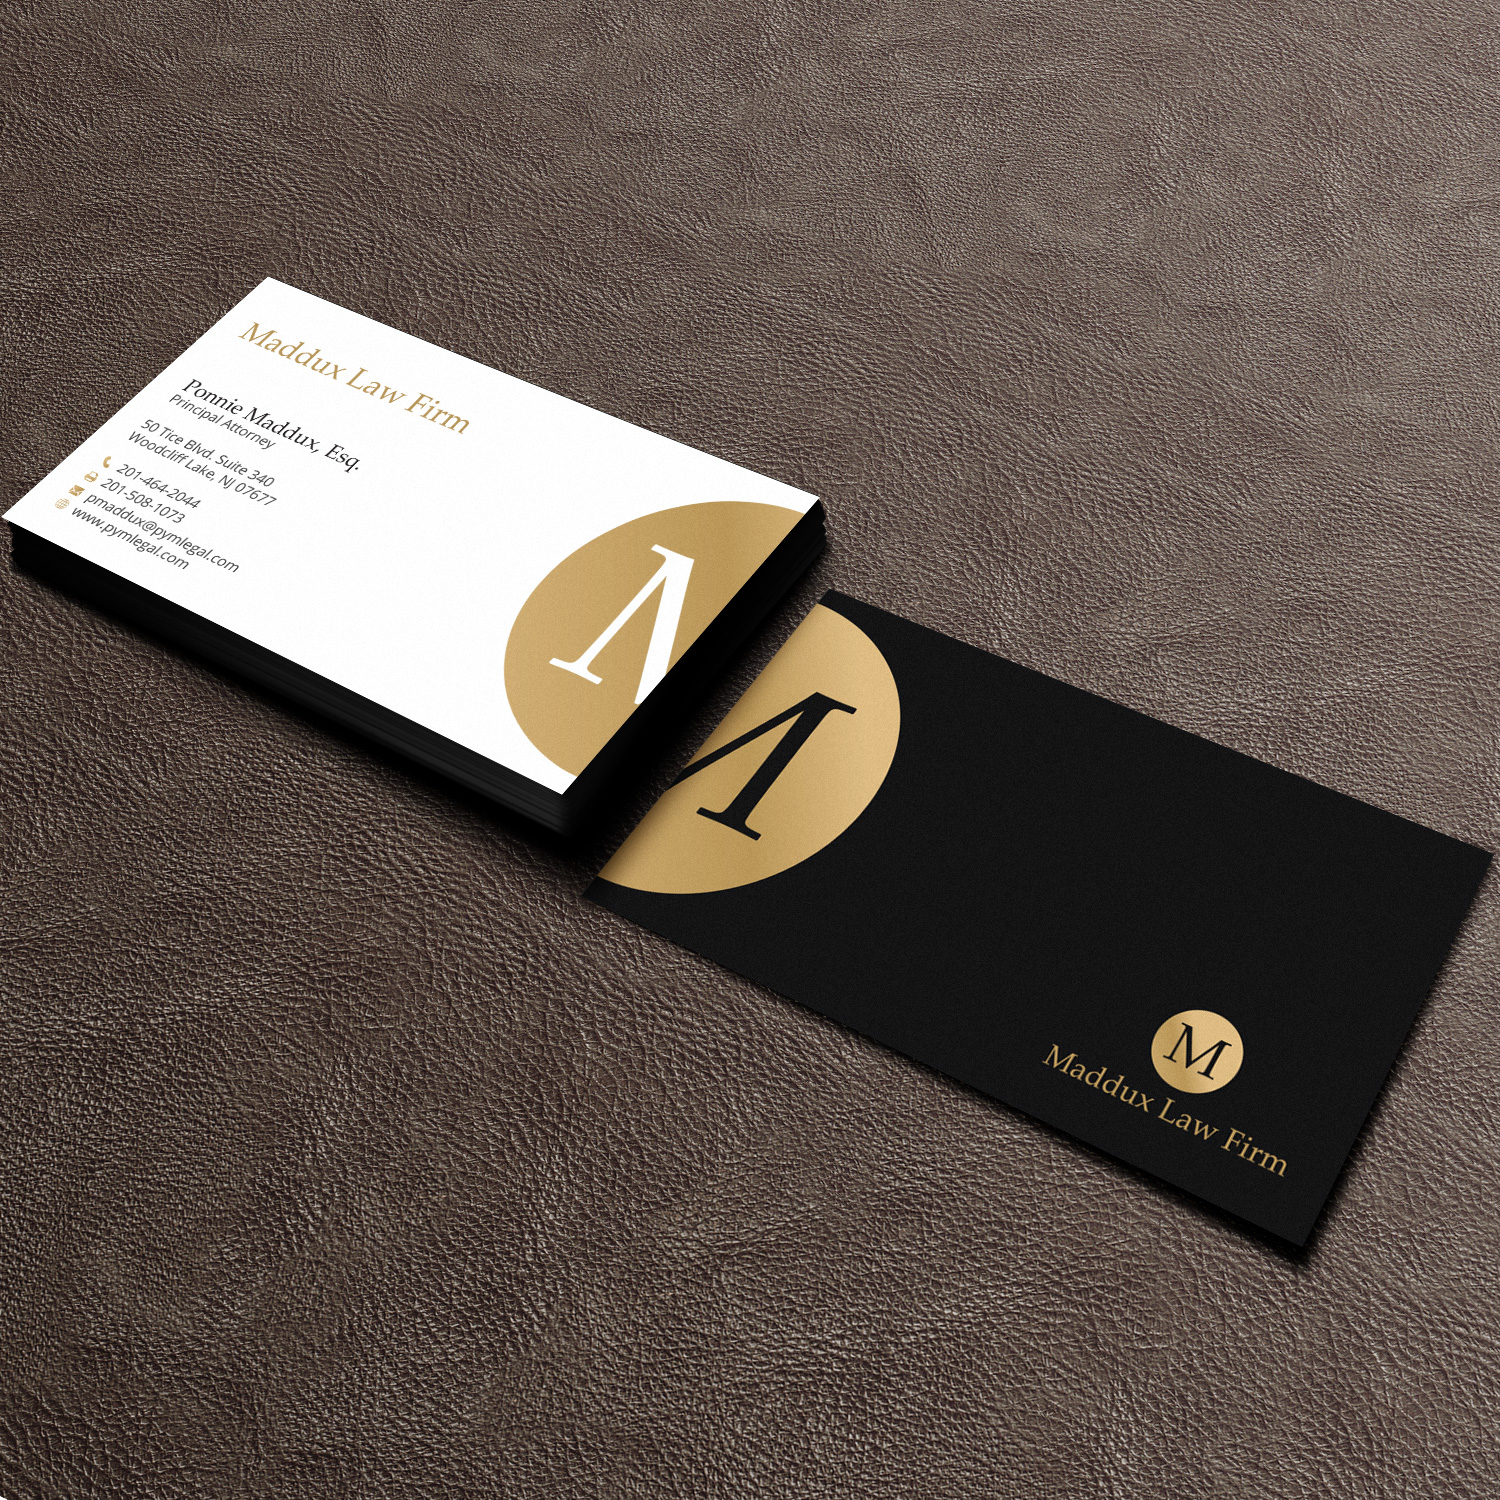 Serious professional lawyer business card design for a company by business card design by rightd for this project design 12424527 reheart Gallery